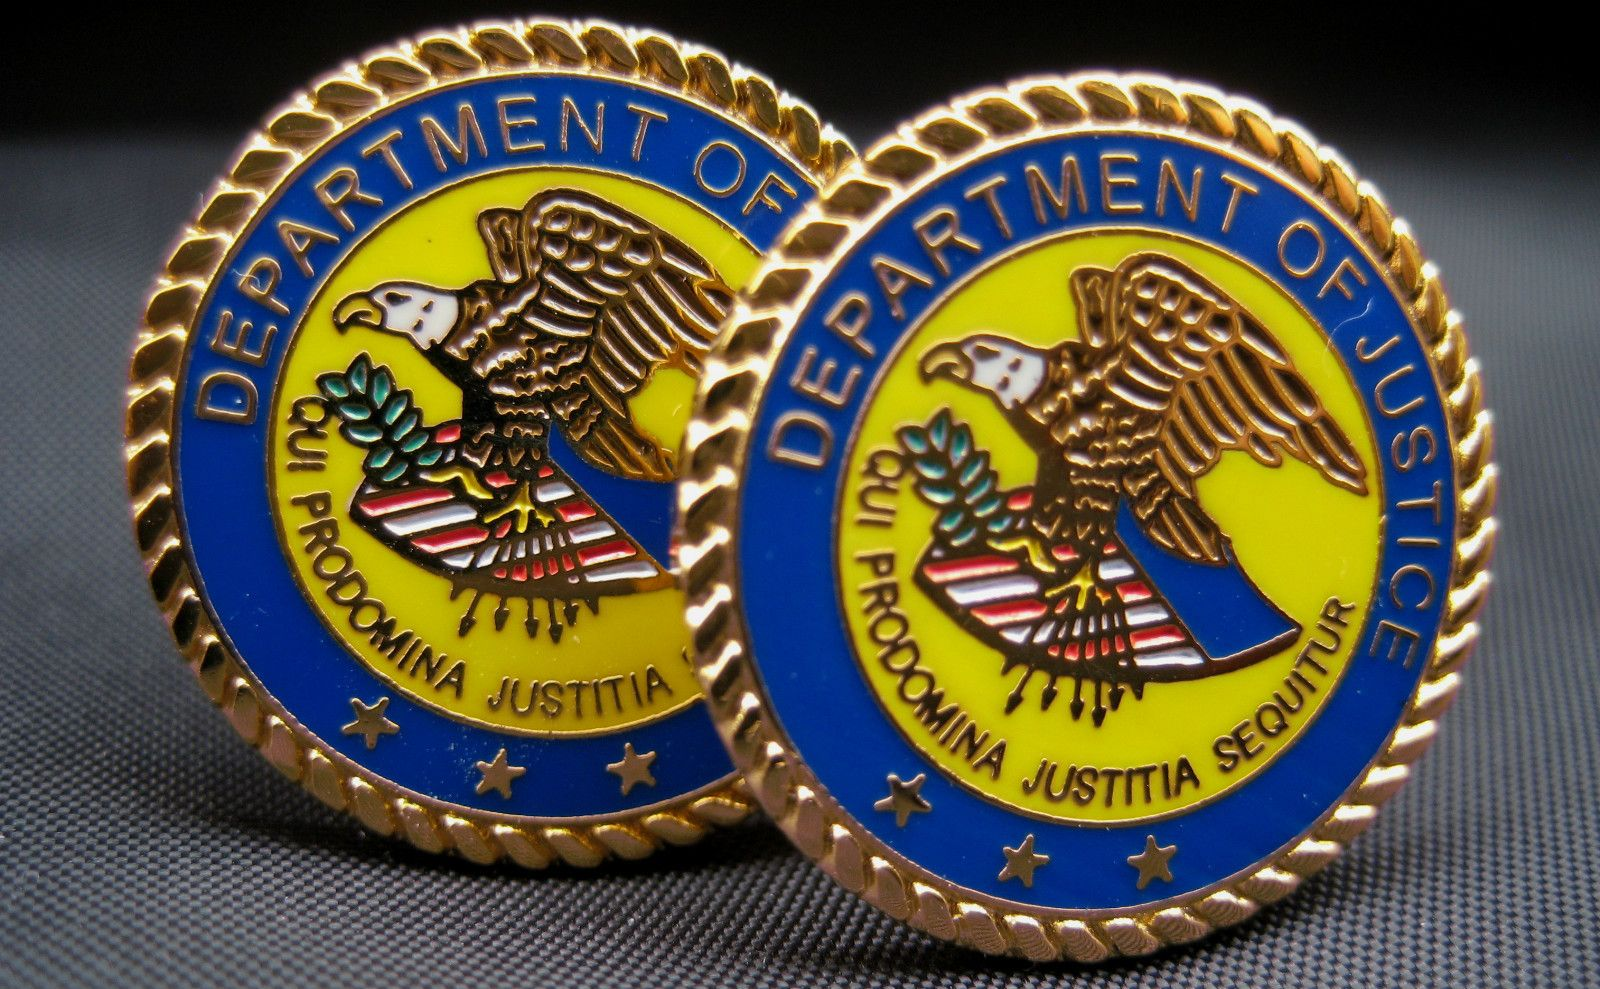 Government Cufflinks | NJ Cufflinks | Specializing in Presidential Cufflinks | Government Cufflinks